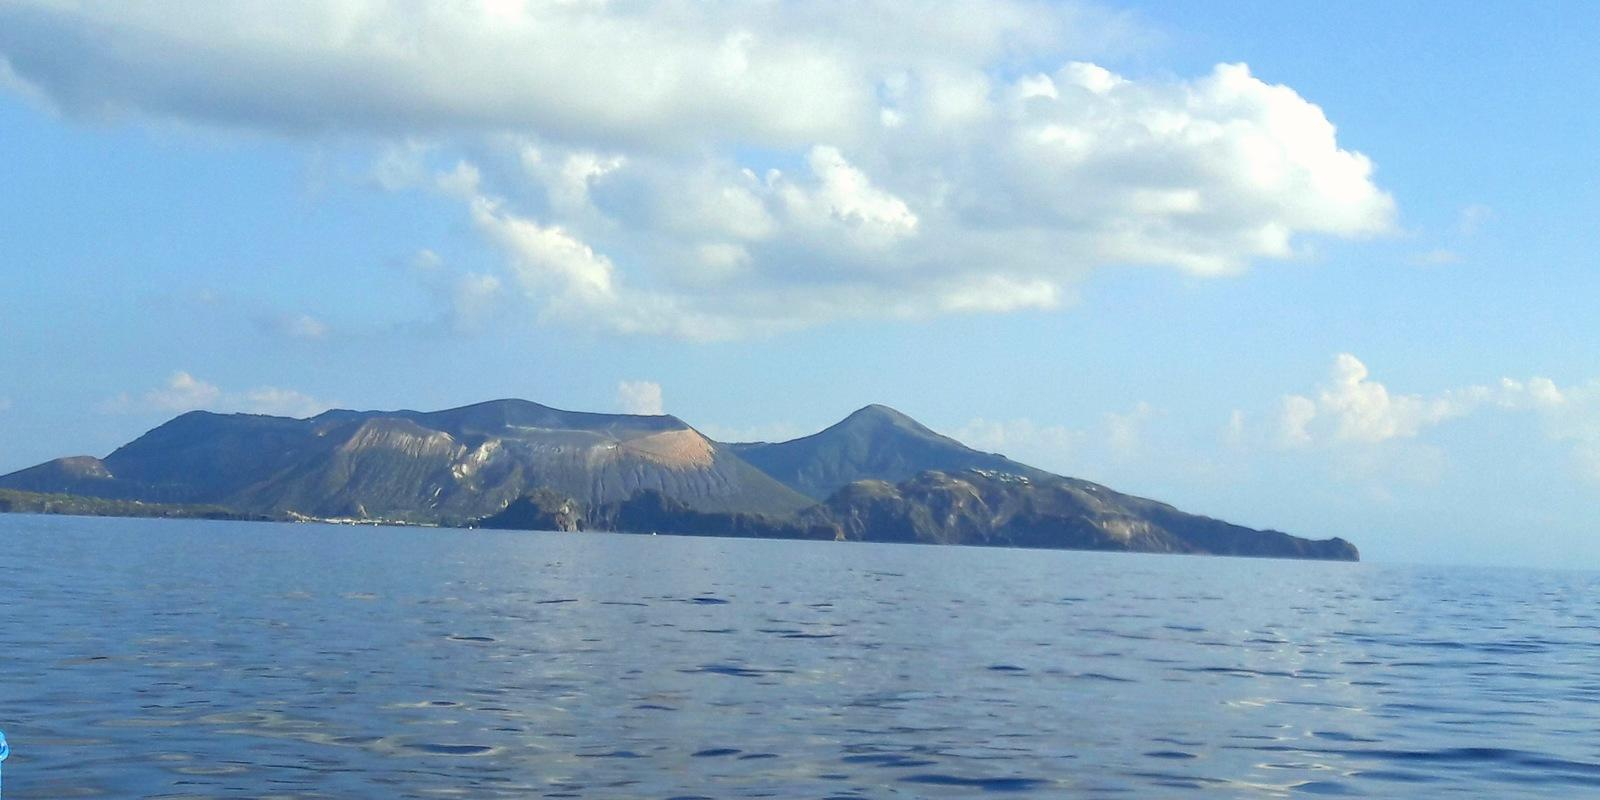 A relaxing week of sailing in the Aeolian islands